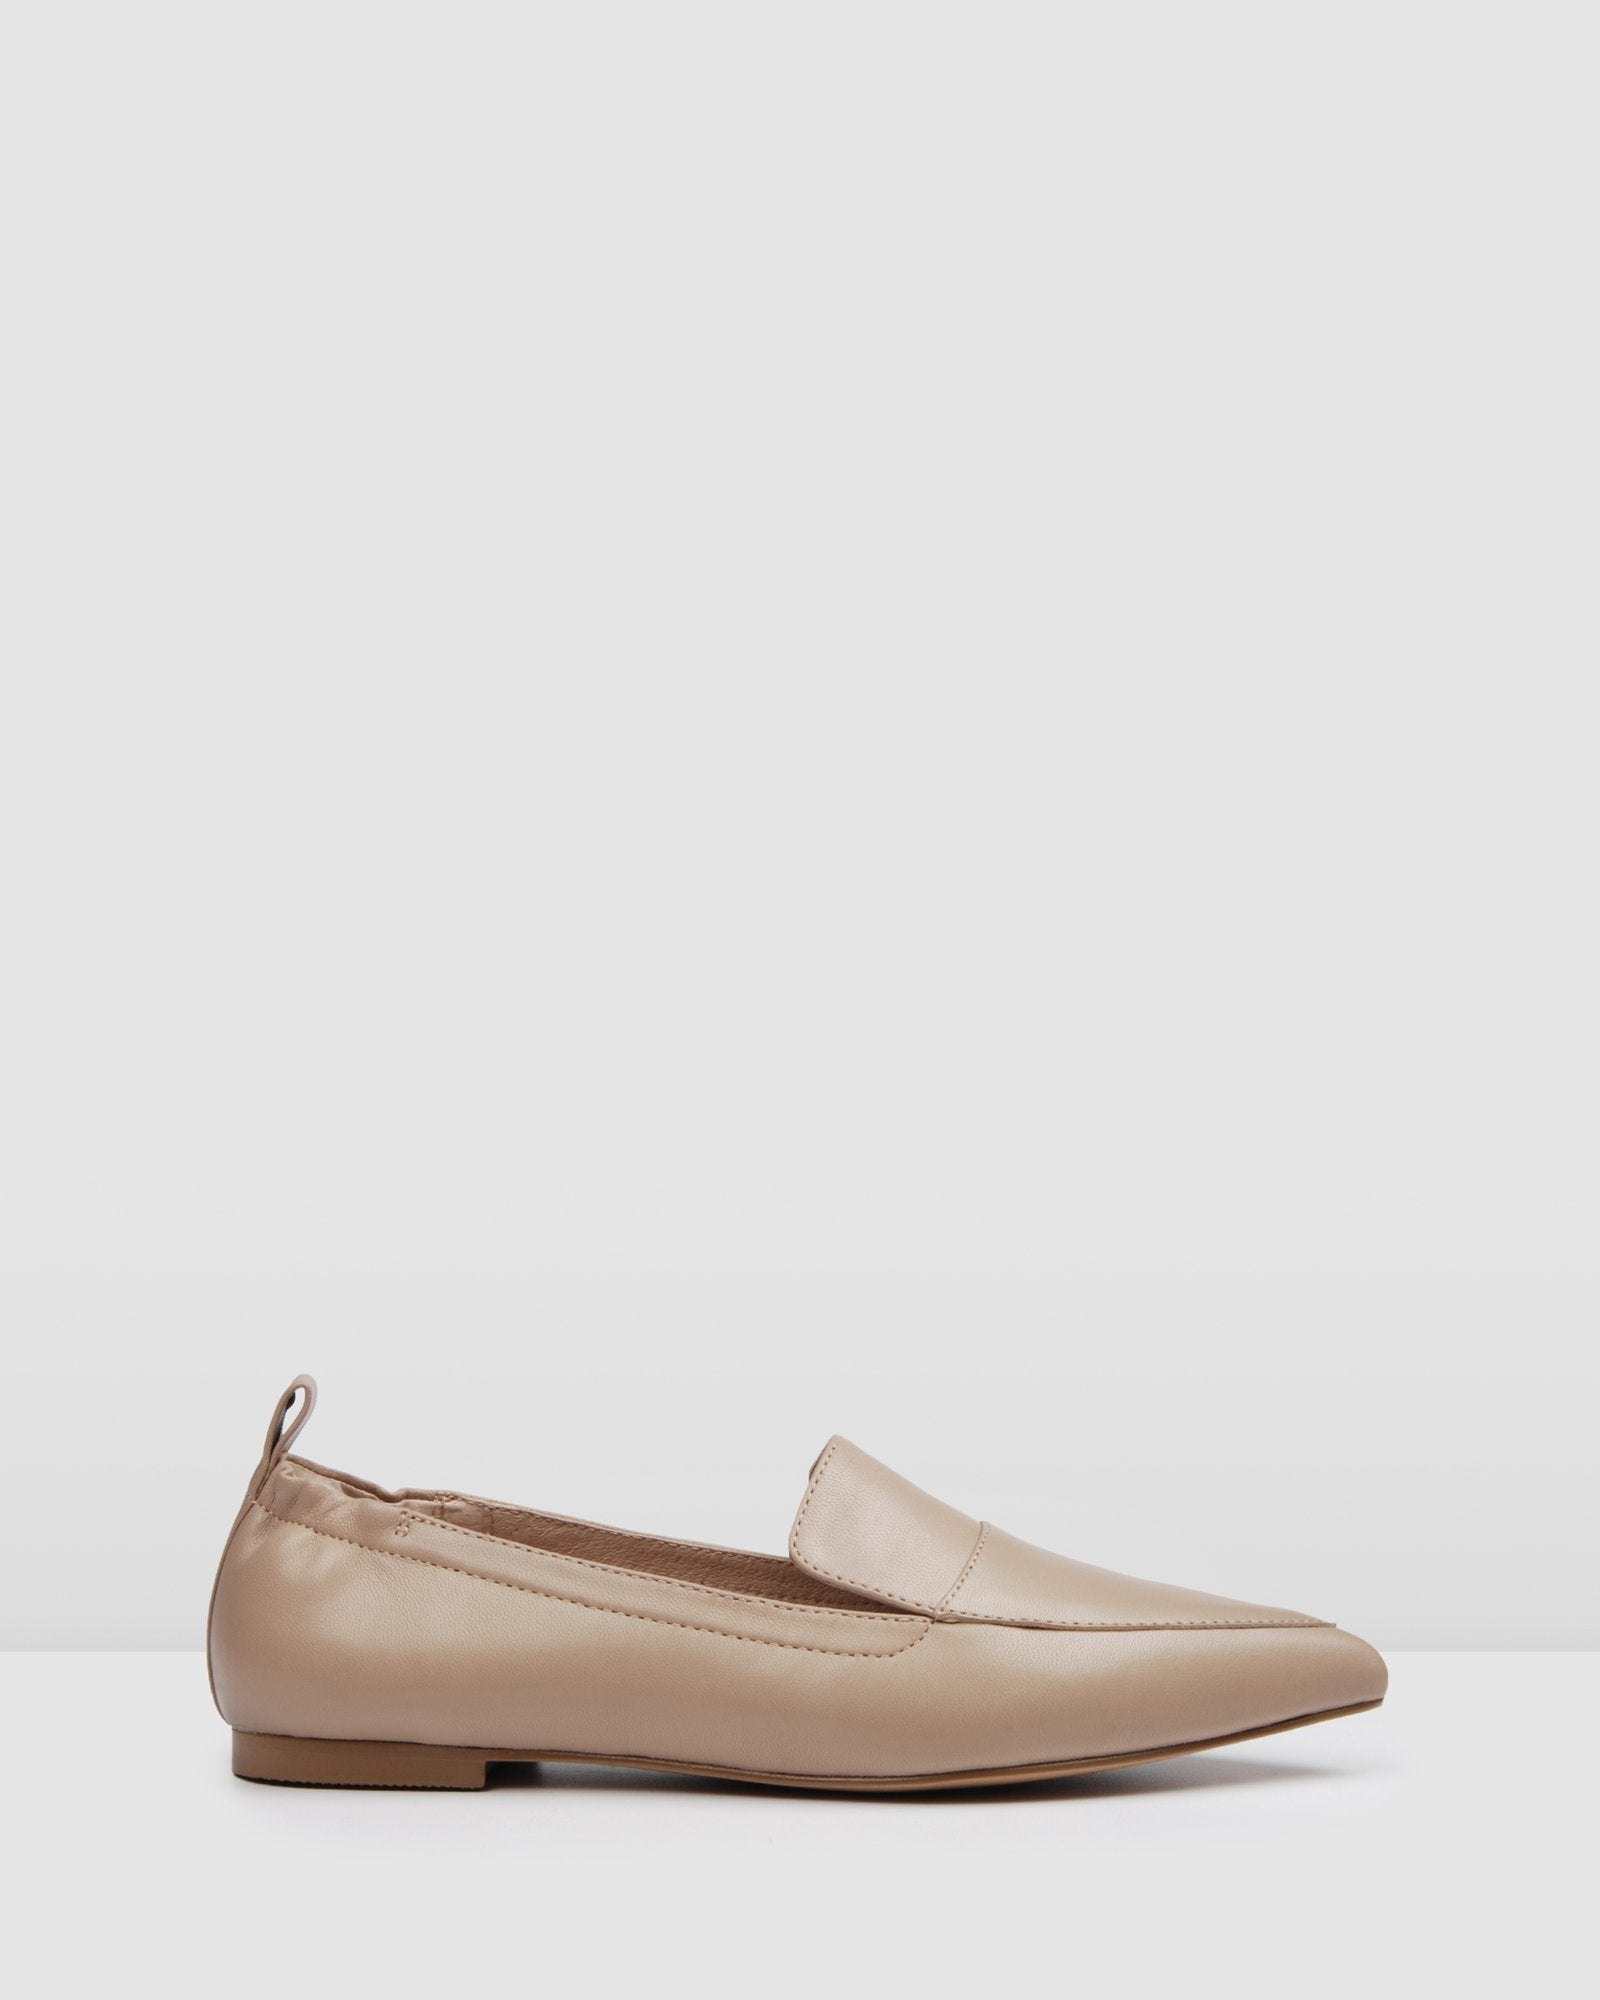 SEETON CASUAL FLATS BEIGE LEATHER